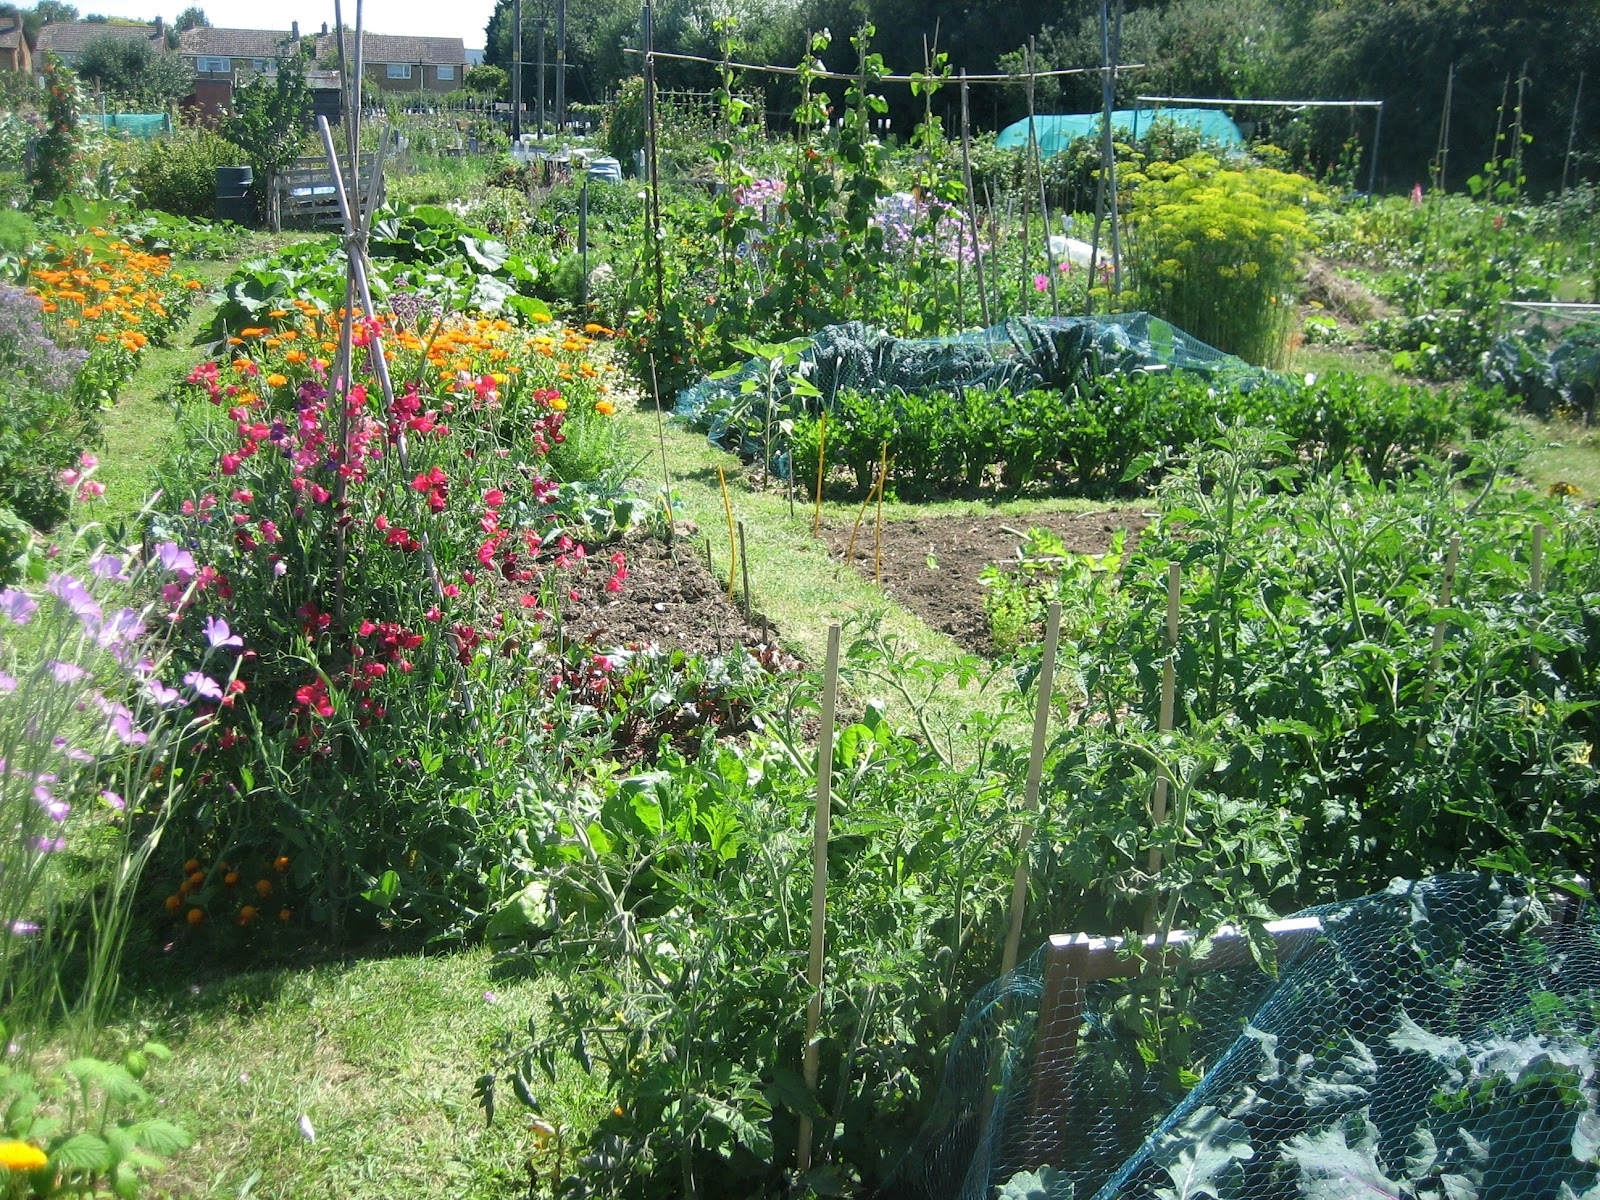 Vegetables and flowers mixed together in this wildlife friendly